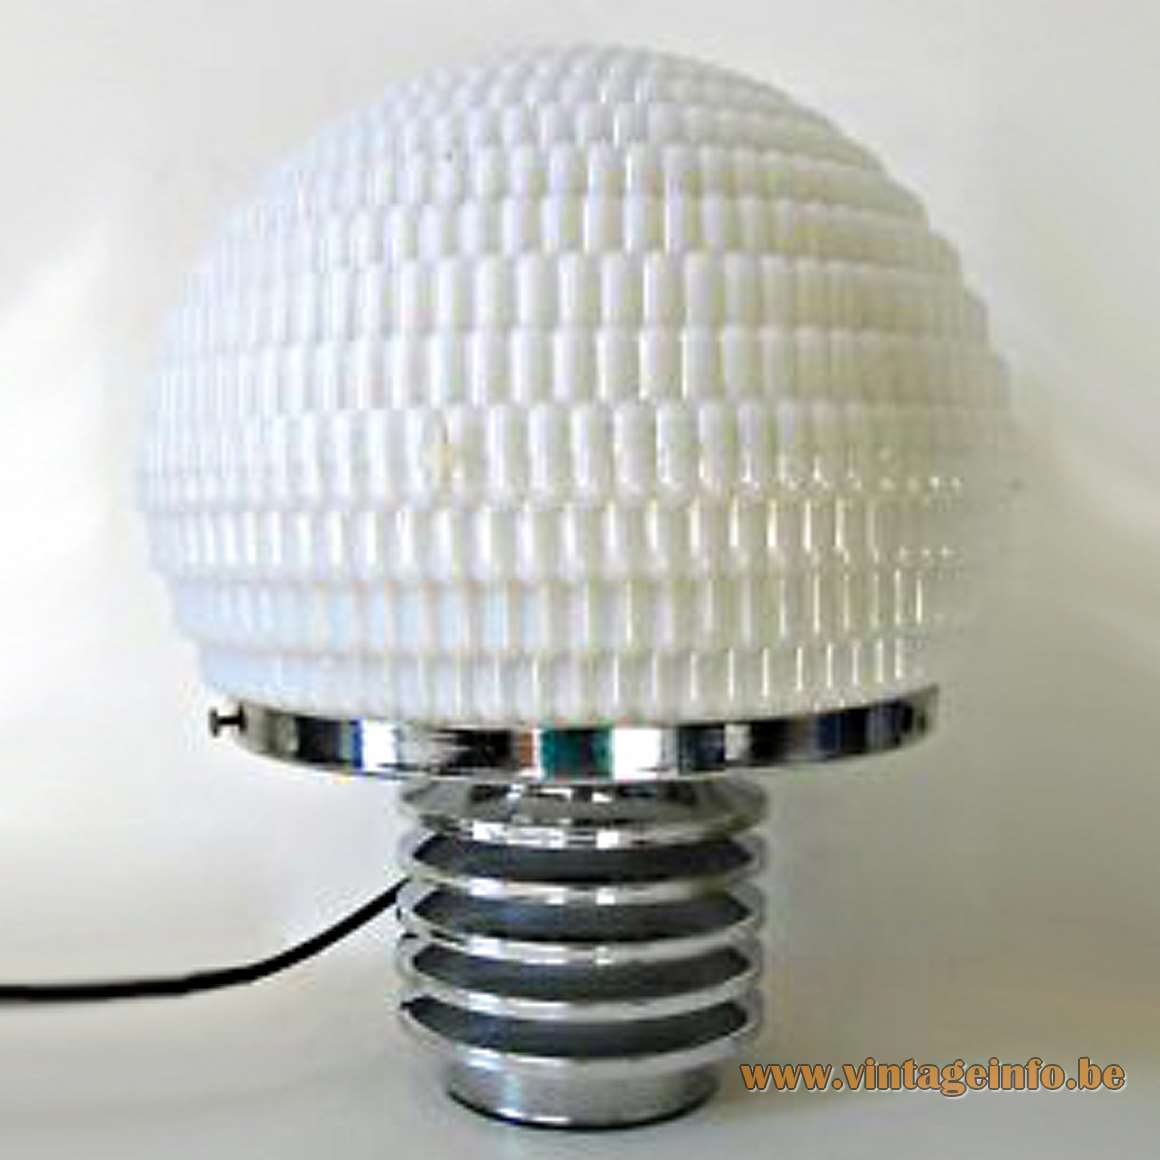 Star-Leuchten table lamp with an opal glass bubble style lampshade